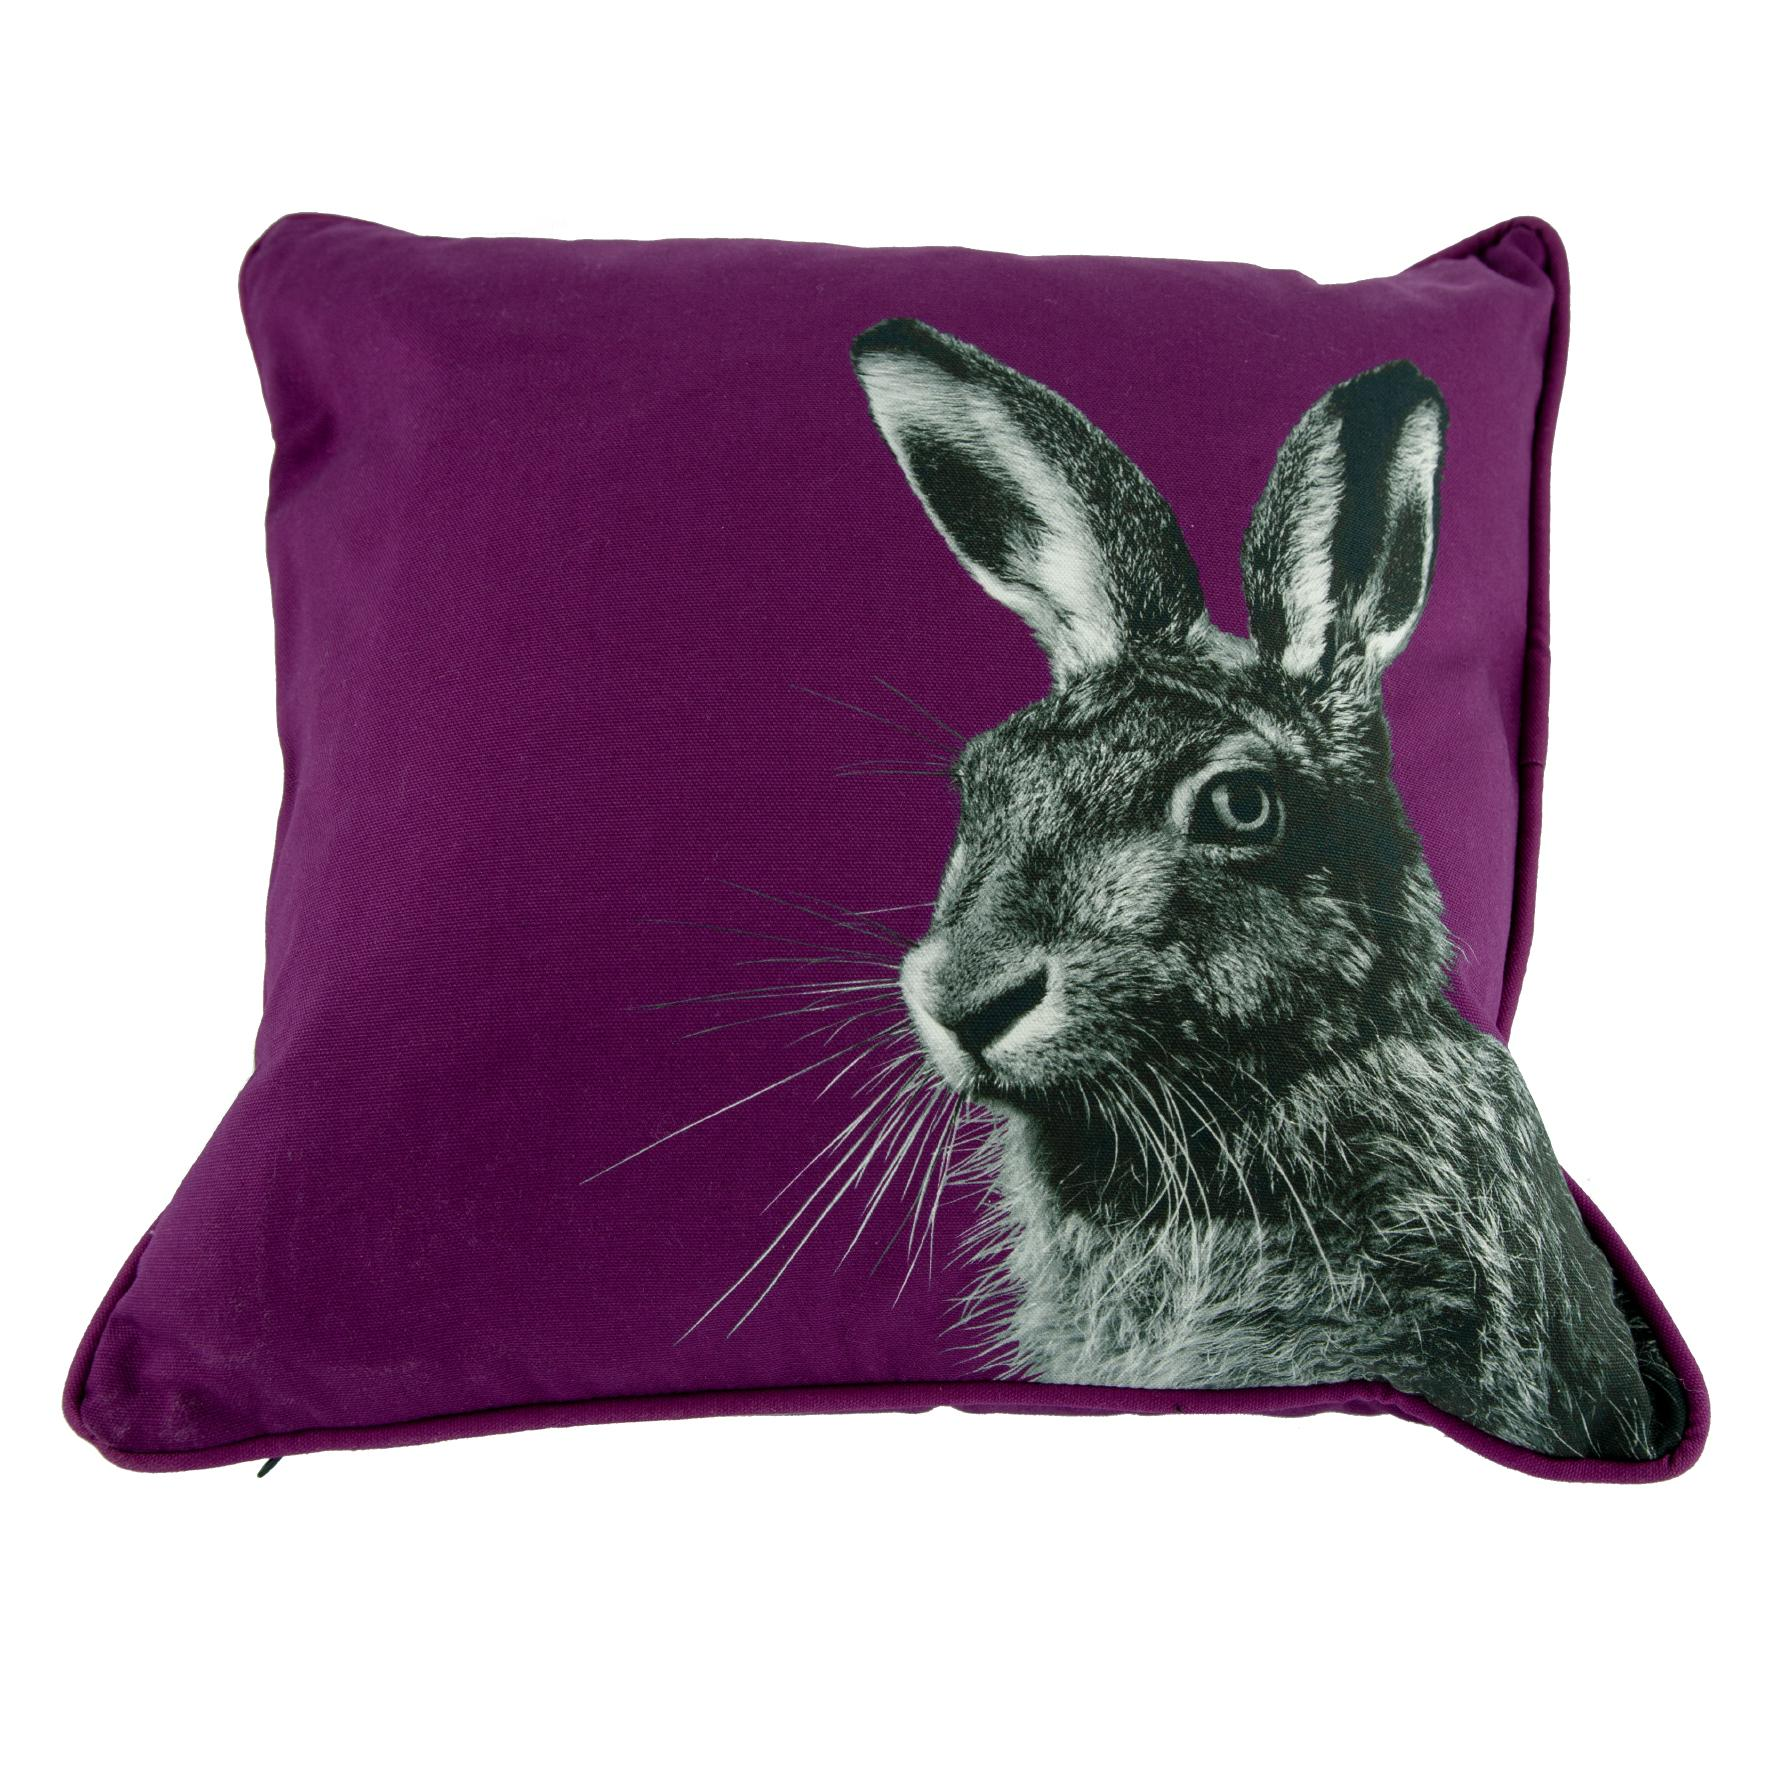 Hare on Claret Cushion